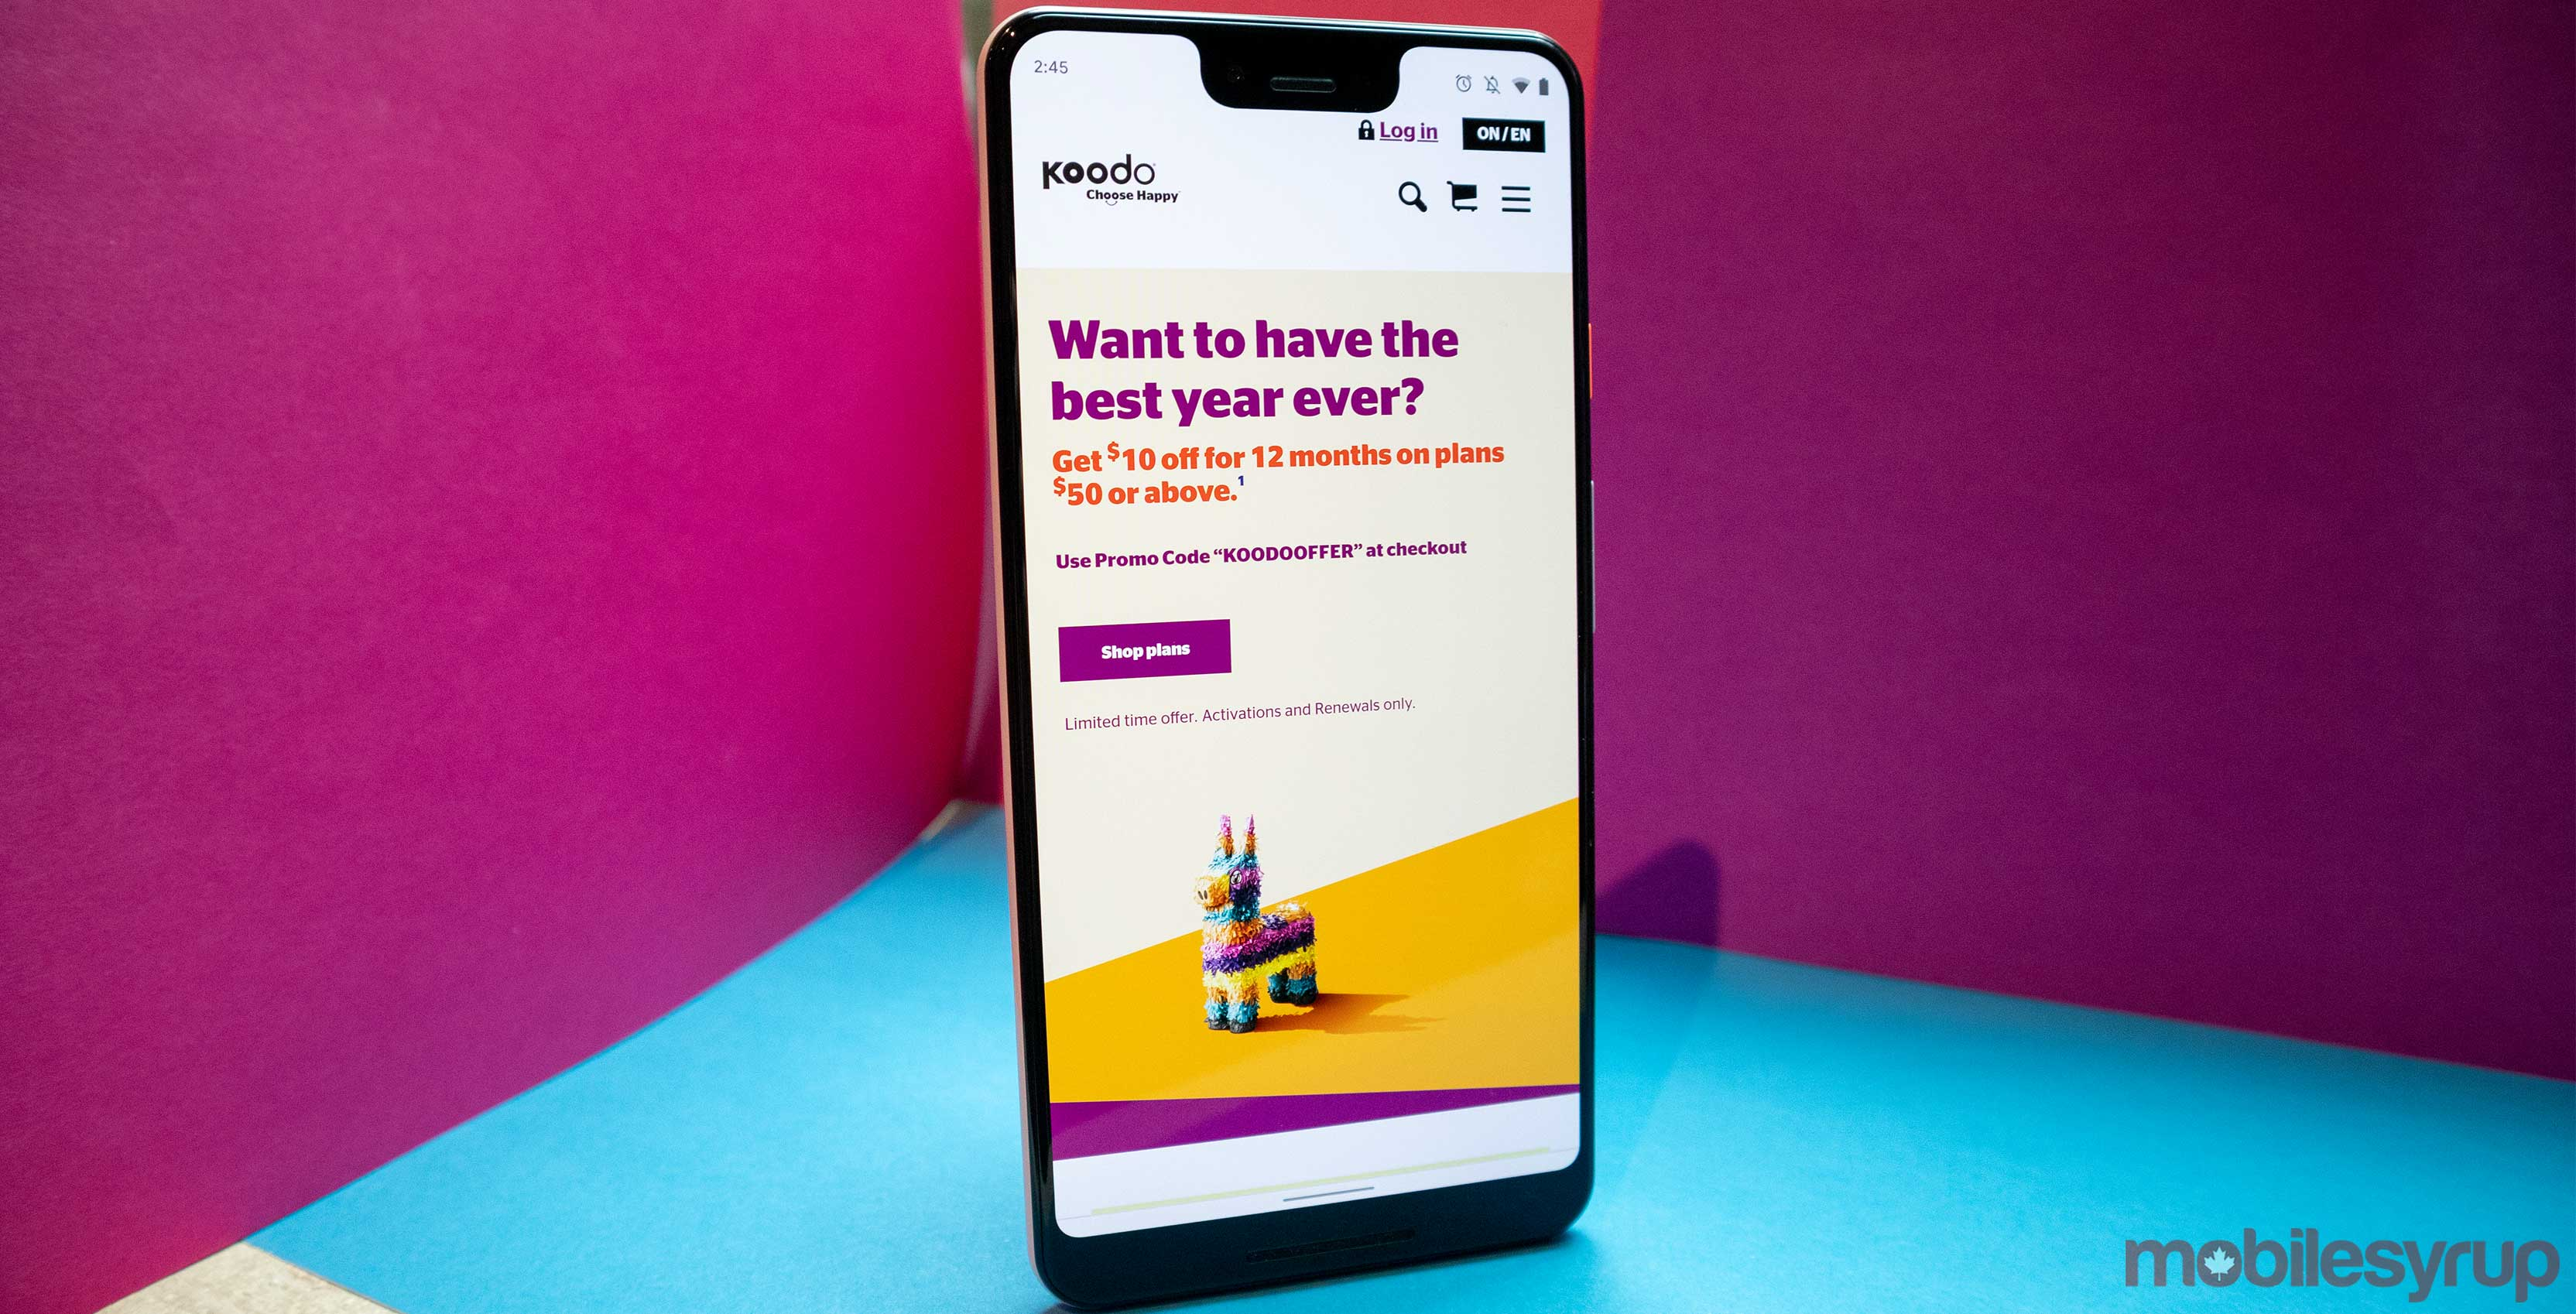 Koodo offering $10 off every plan over $50 for a year with promo code